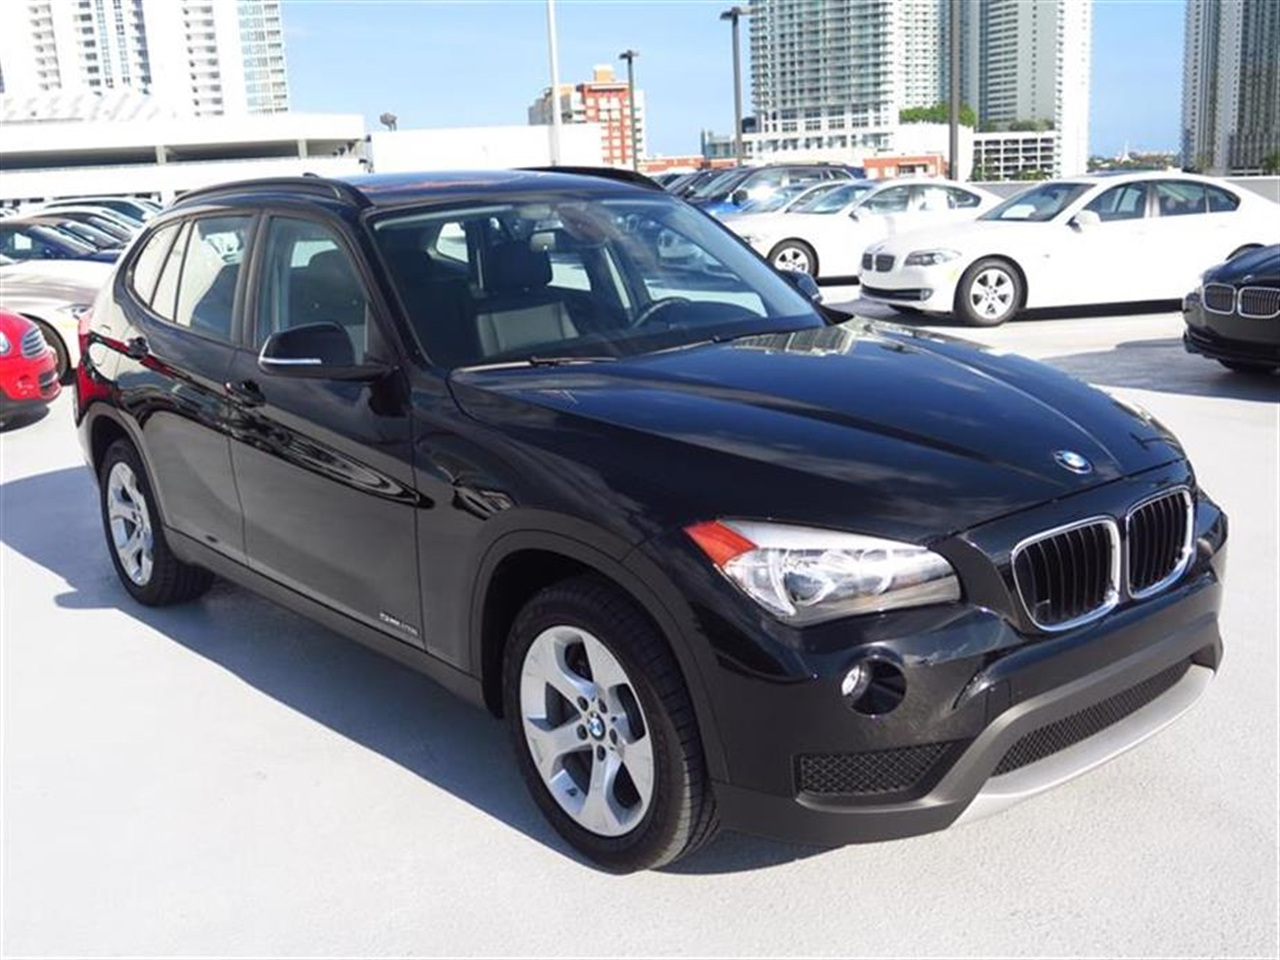 2013 BMW X1 RWD 4dr 28i 9605 miles Adjustable front armrest Anti-theft alarm system Automatic cl